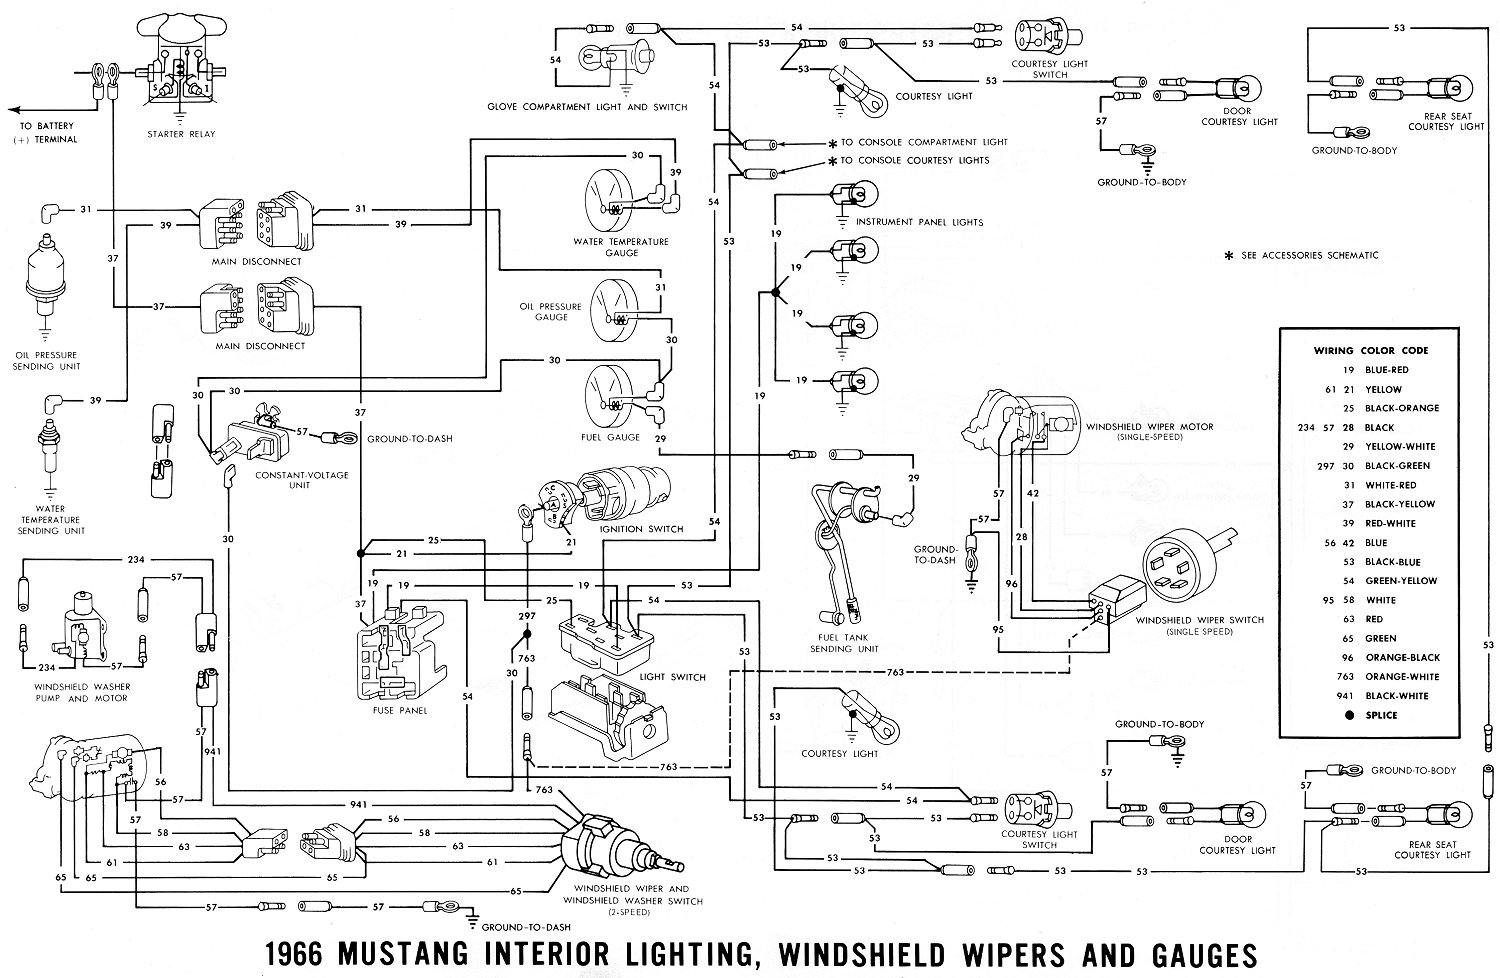 [DIAGRAM_38IU]  1966 Mustang Wiring Diagrams - Average Joe Restoration | 1966 Ford Alternator Diagram Wiring Schematic |  | Average Joe Restoration